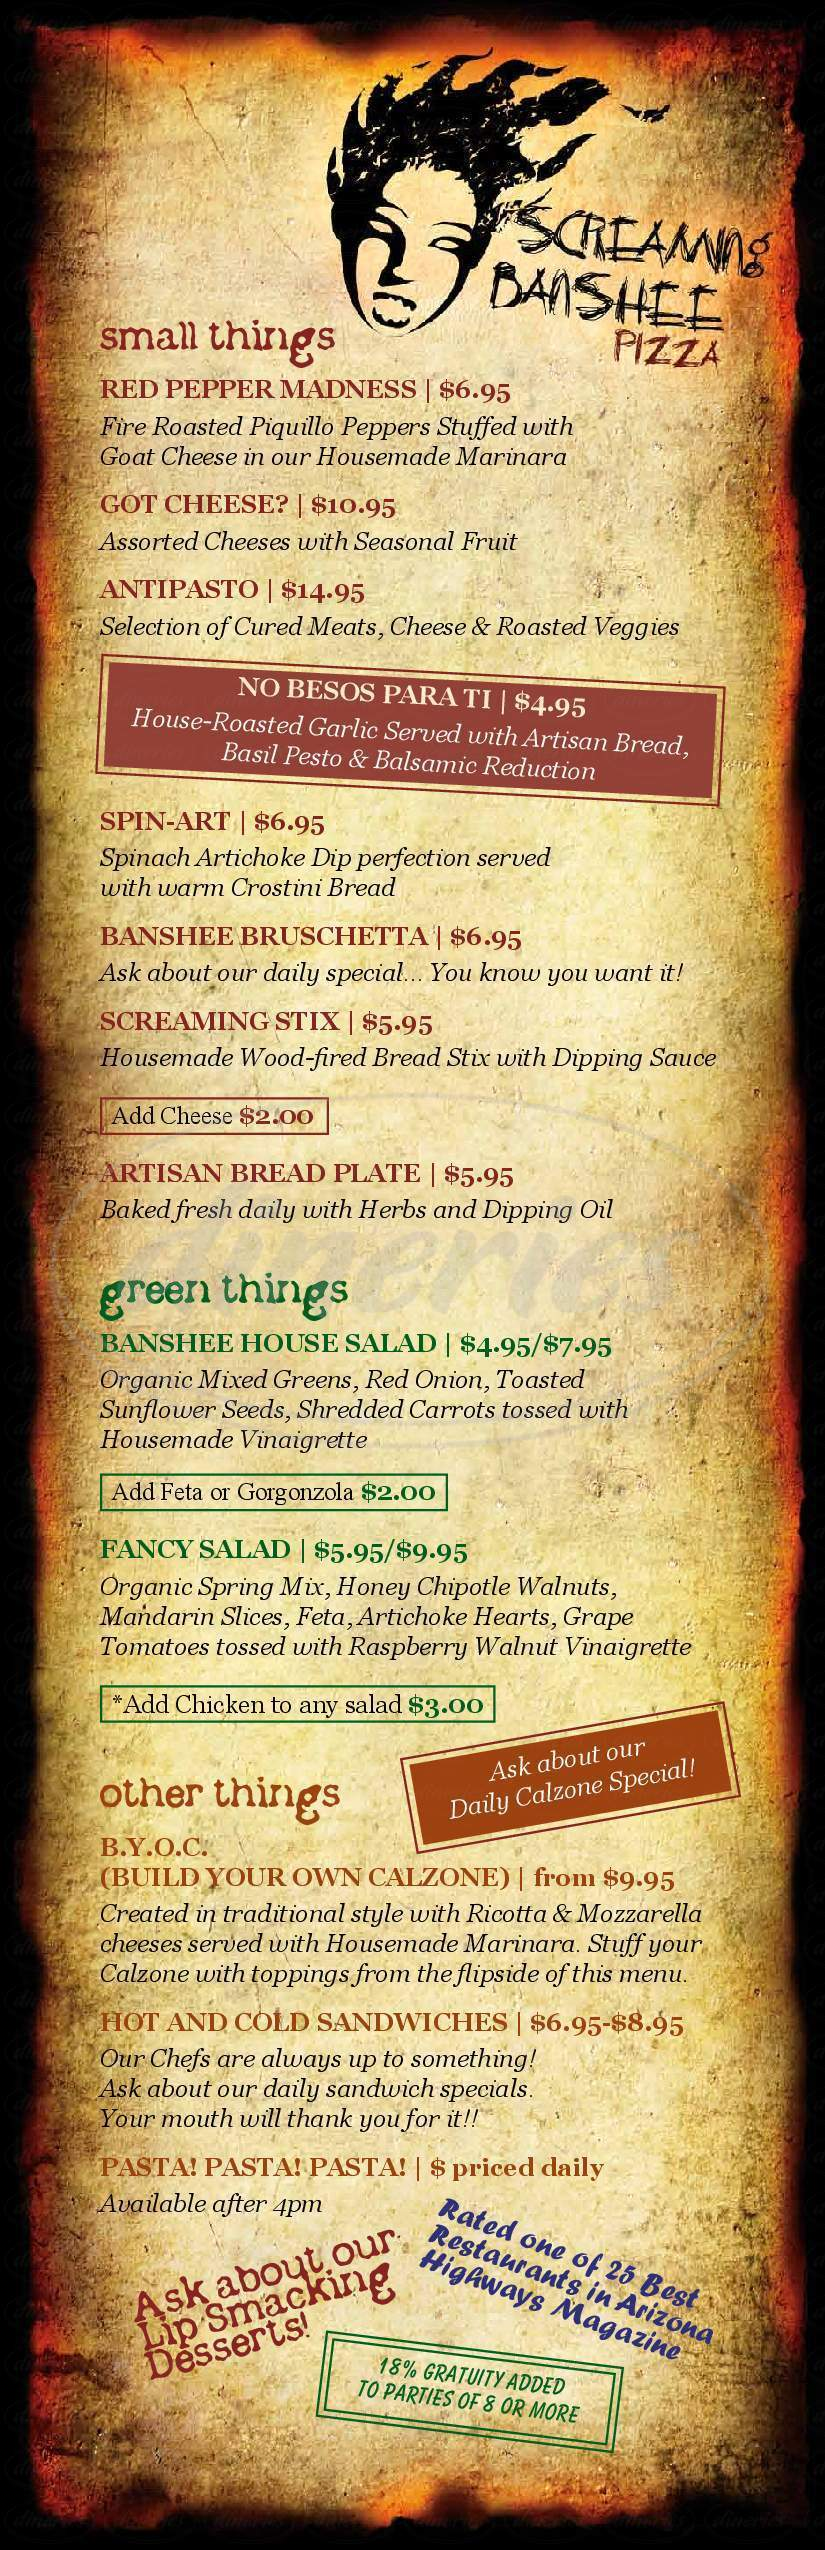 menu for Screaming Banshee Pizza